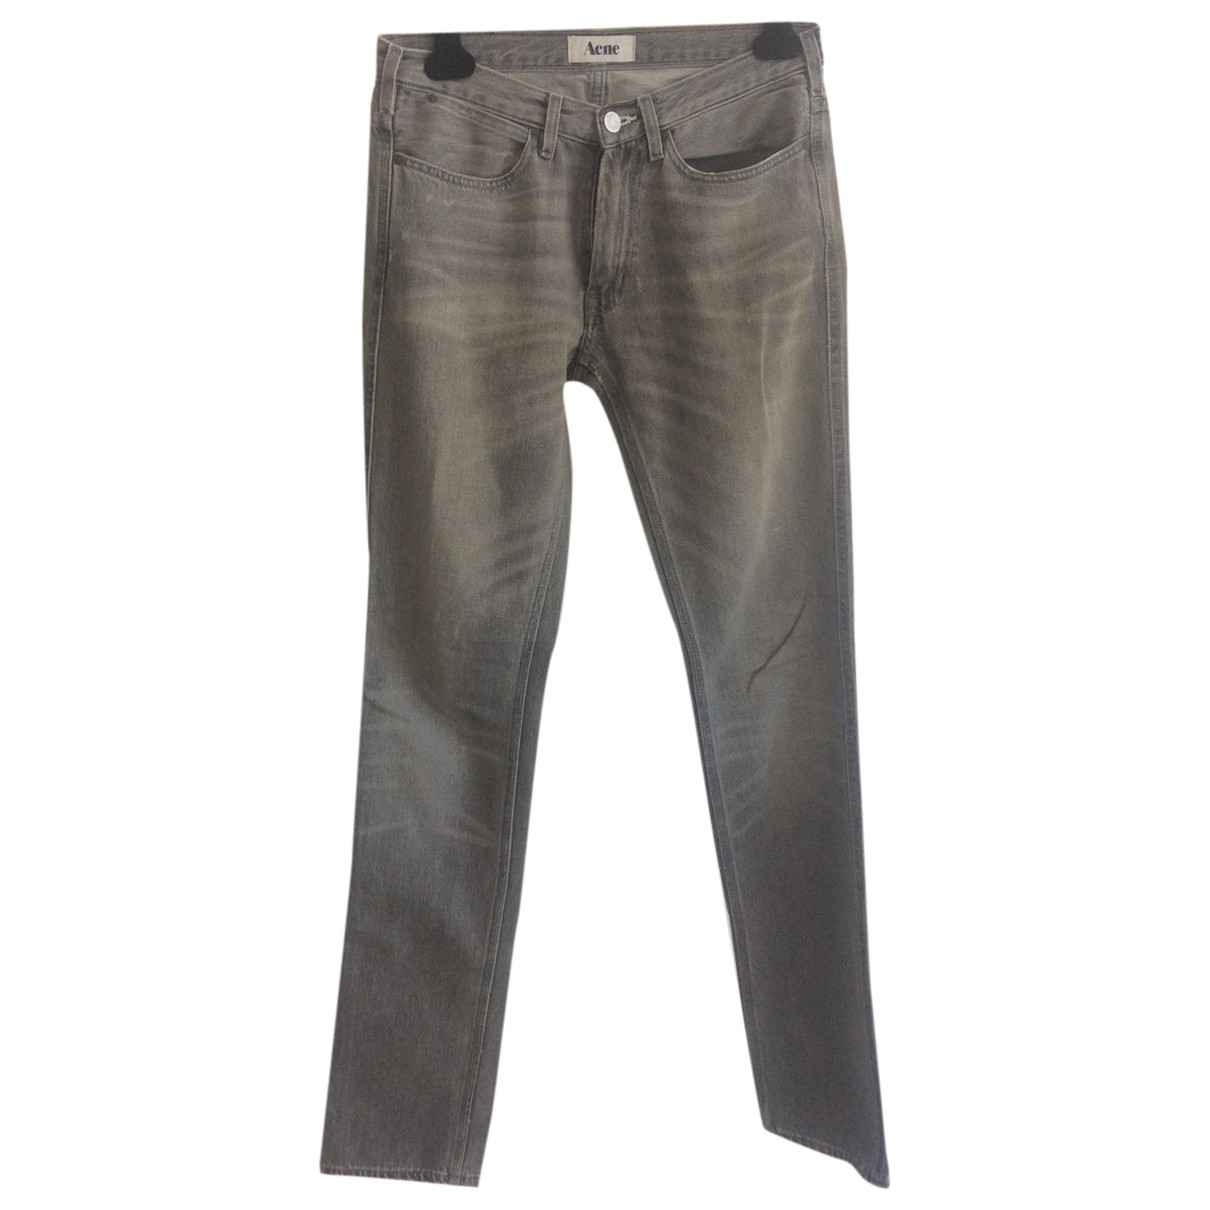 Acne Studios \N Grey Cotton - elasthane Jeans for Men 31 US